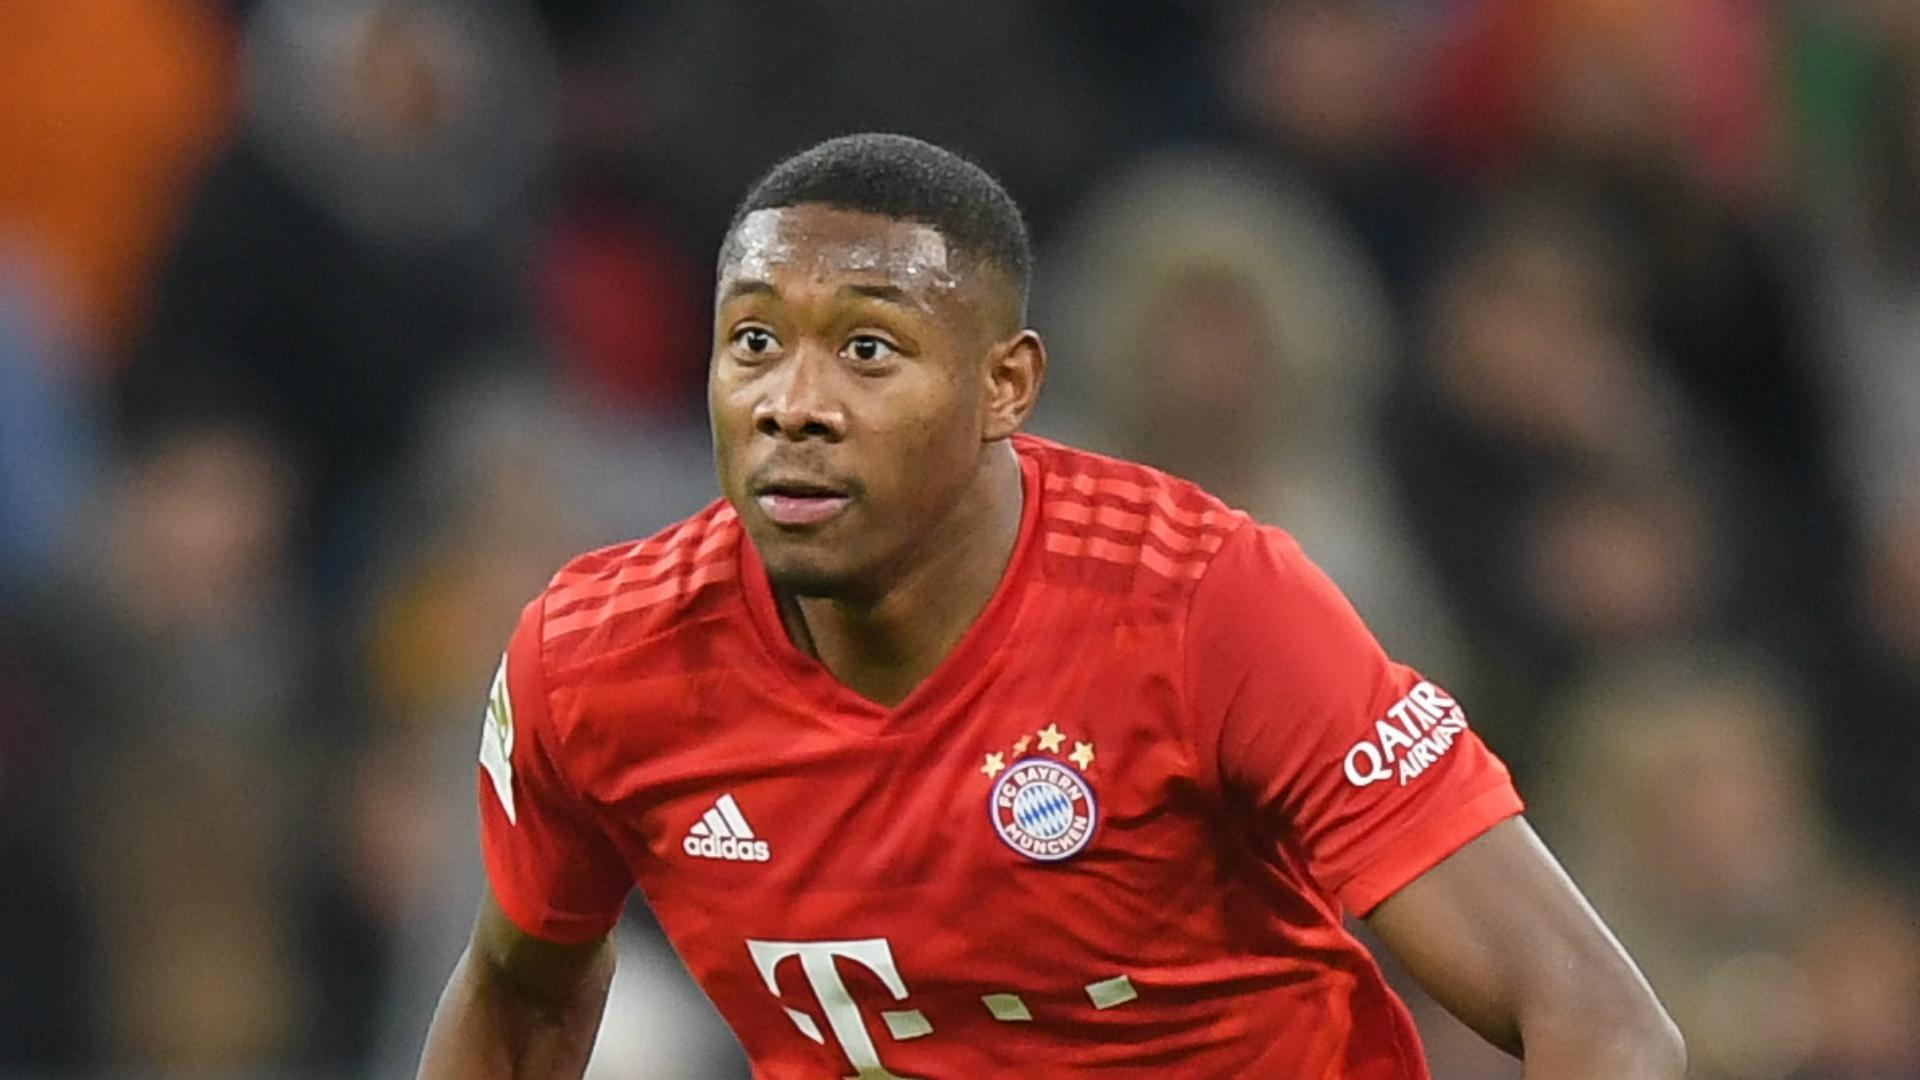 Alaba says Bayern 'won't hide' against Barcelona and refuses to comment on transfer rumours